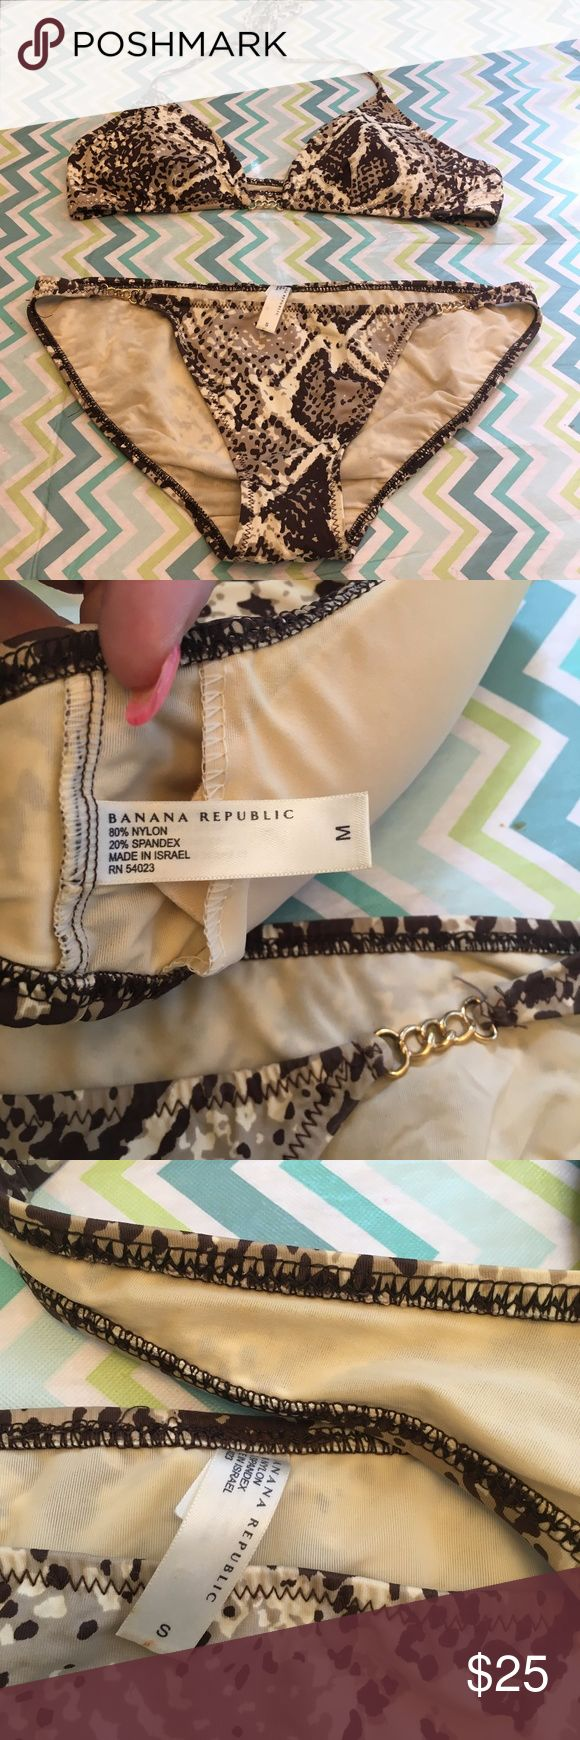 Size M/S Banana Republic Bikini Chic and svelte banana republic bikini set, size medium top and small bottoms, brown and cream snakeskin print with gold chain accents, excellent condition and gently used. Banana Republic Swim